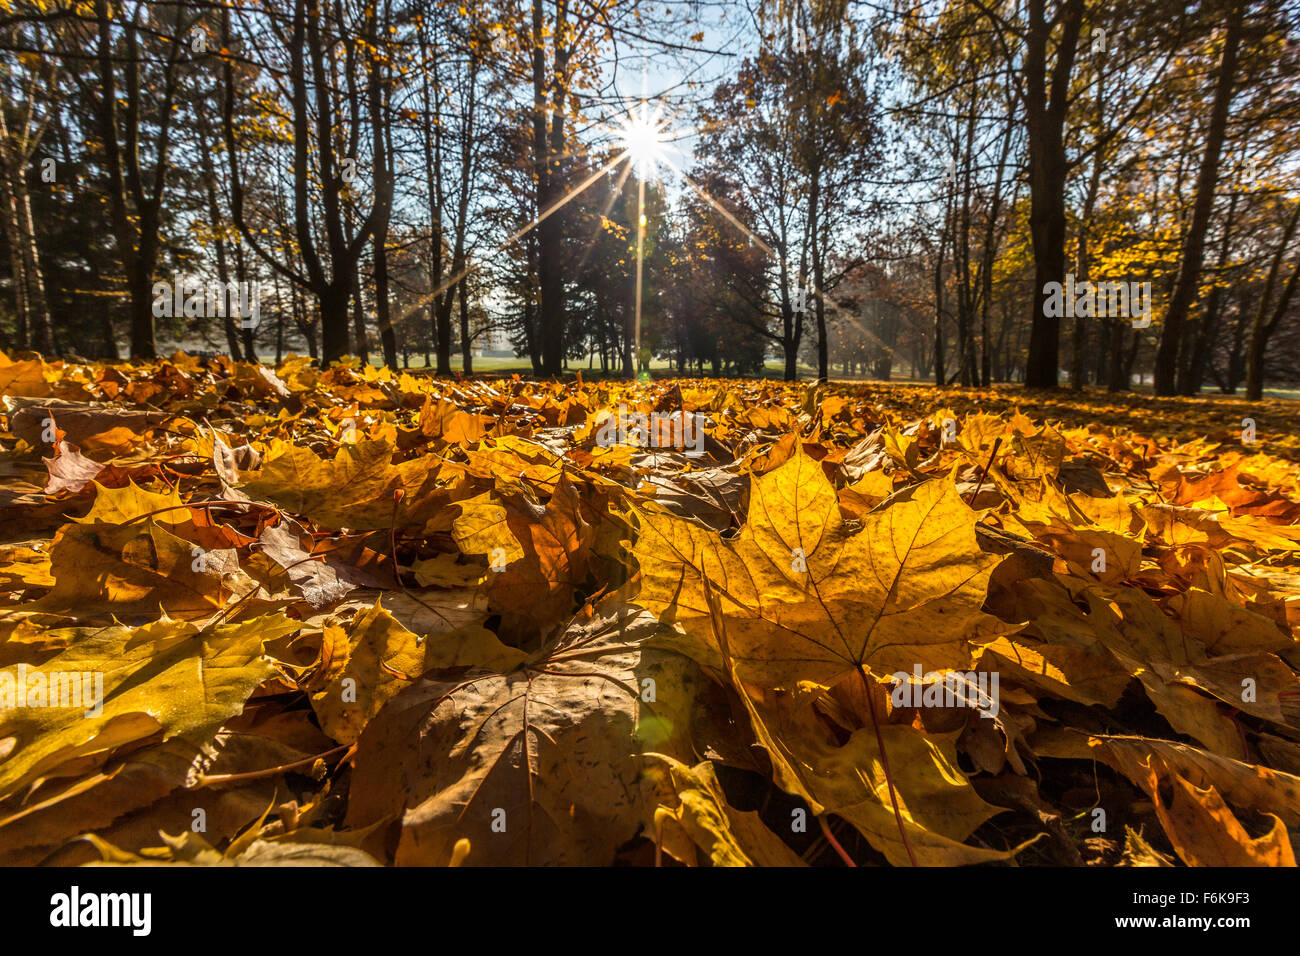 Autumn, leaves, sunshine, from below - Stock Image